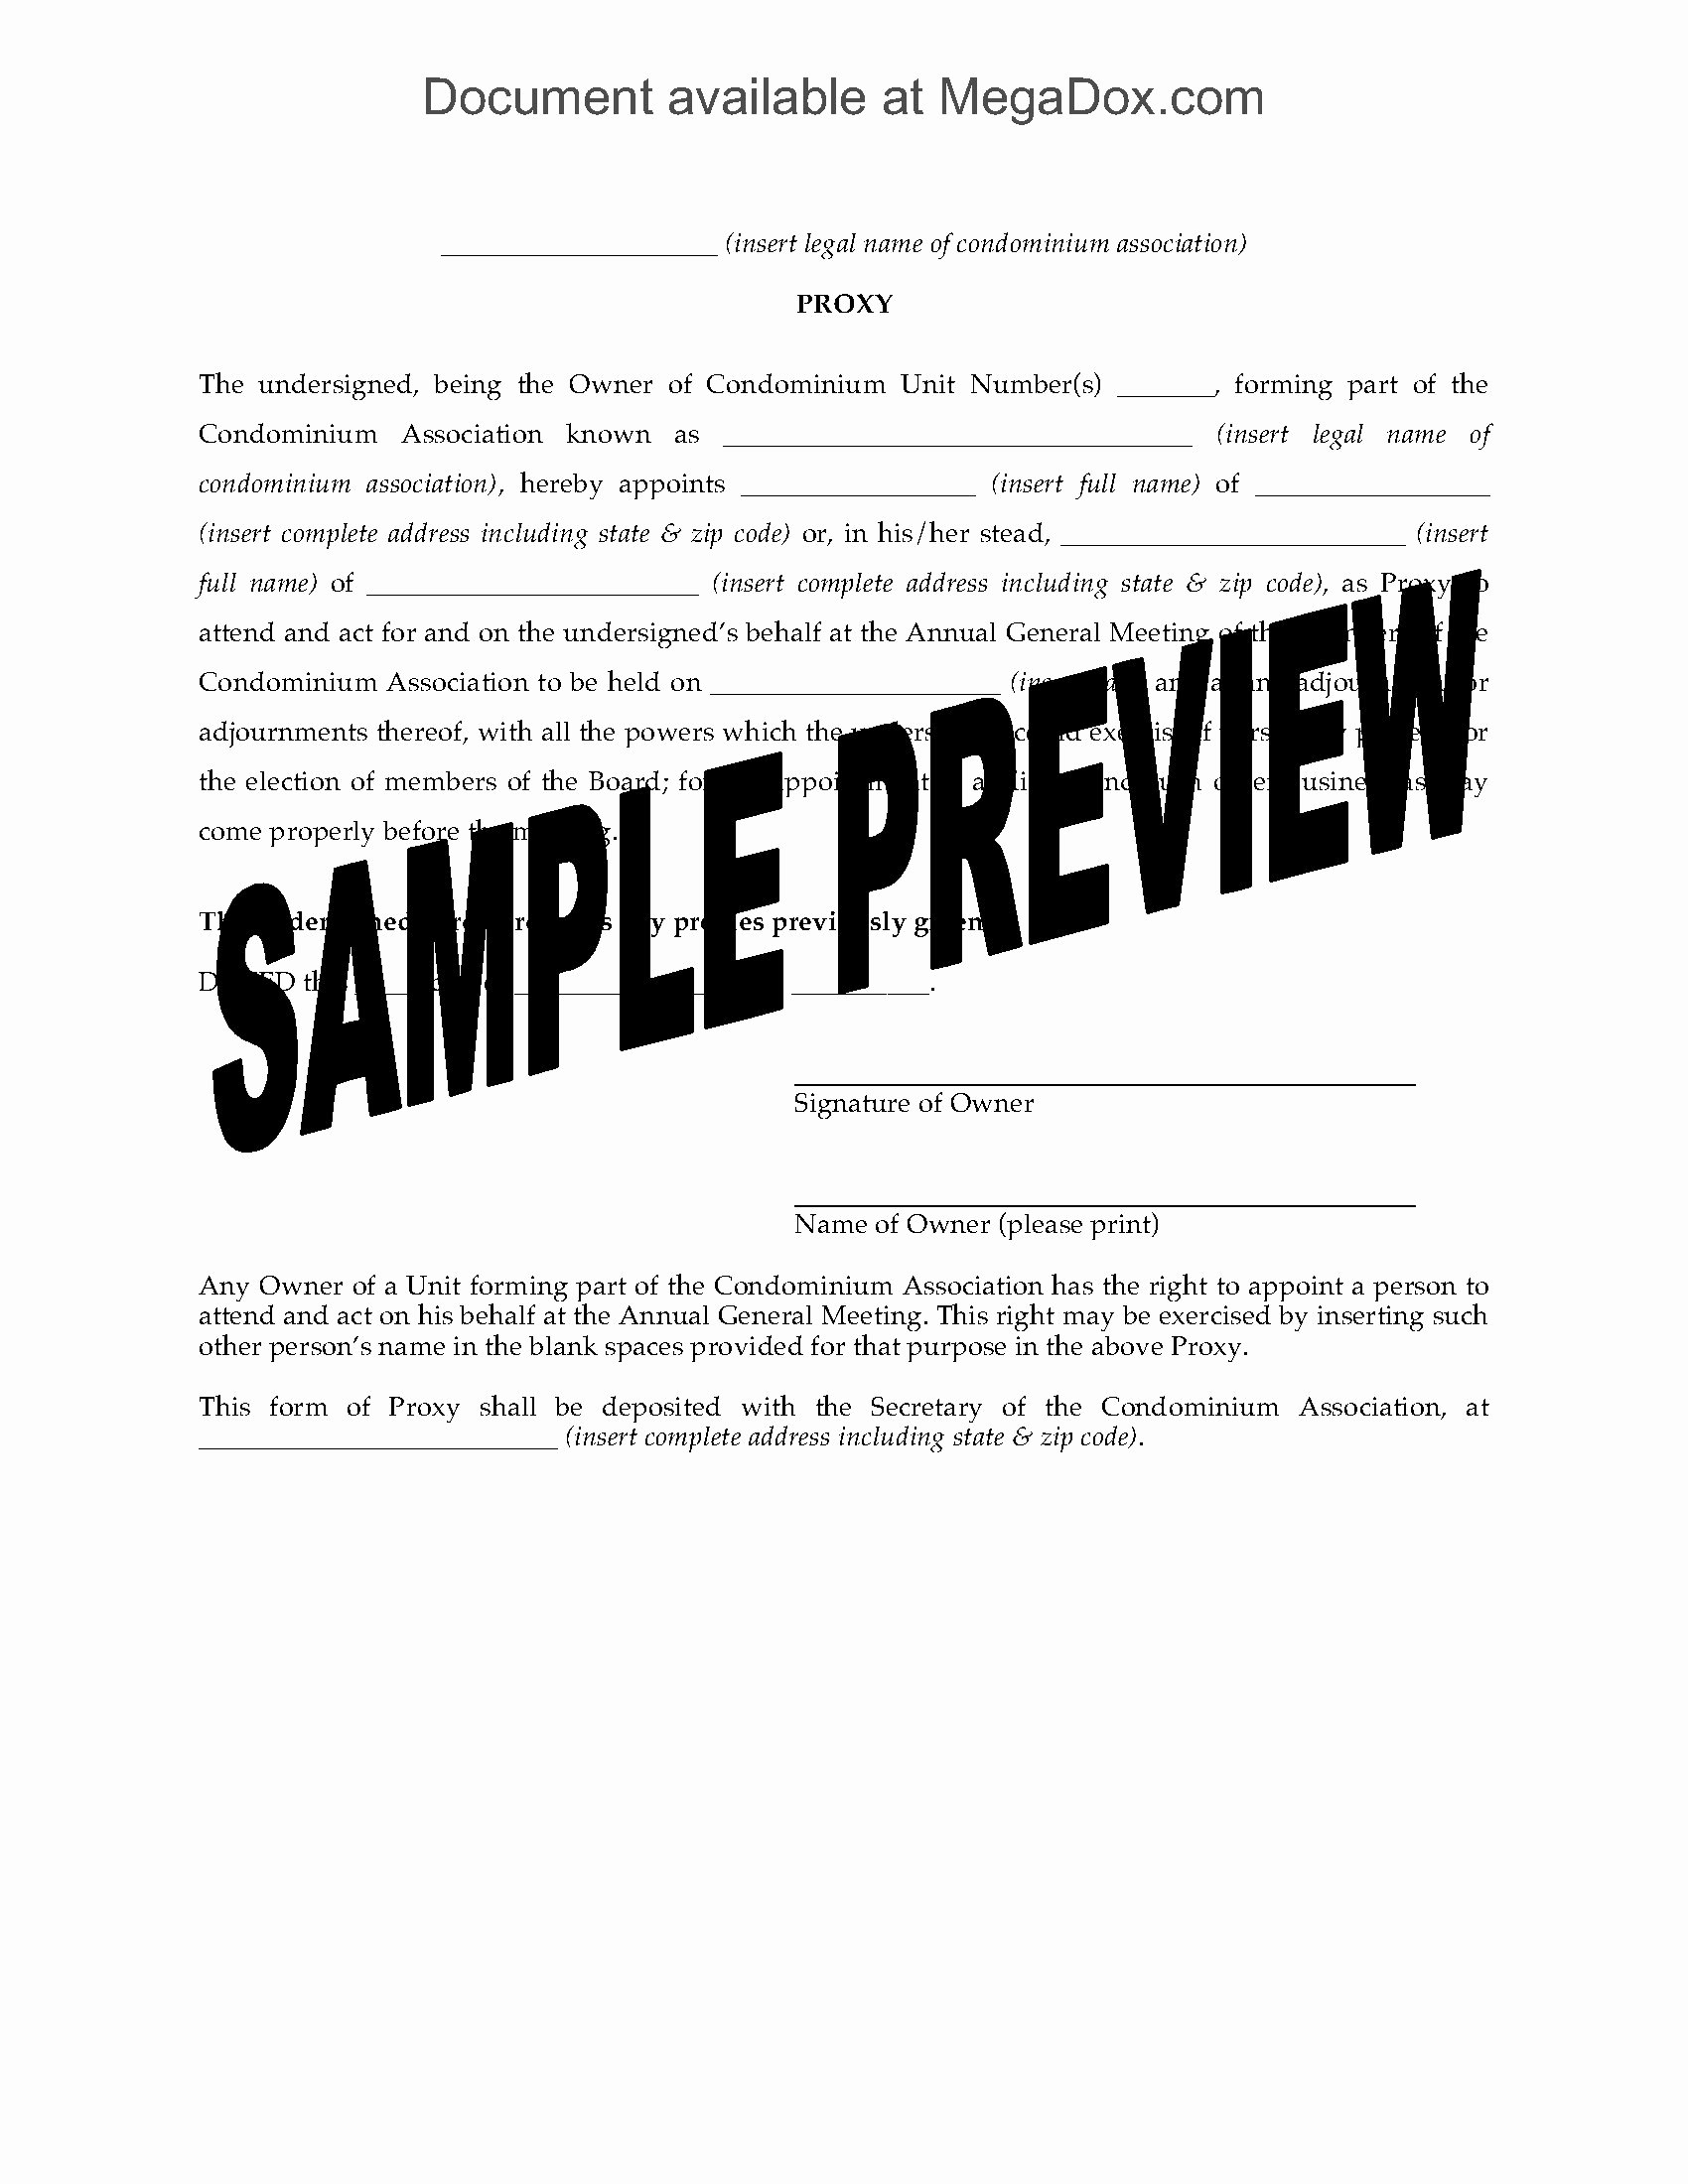 Proxy Voting form Template Best Of Usa Proxy form for Condo association Agm